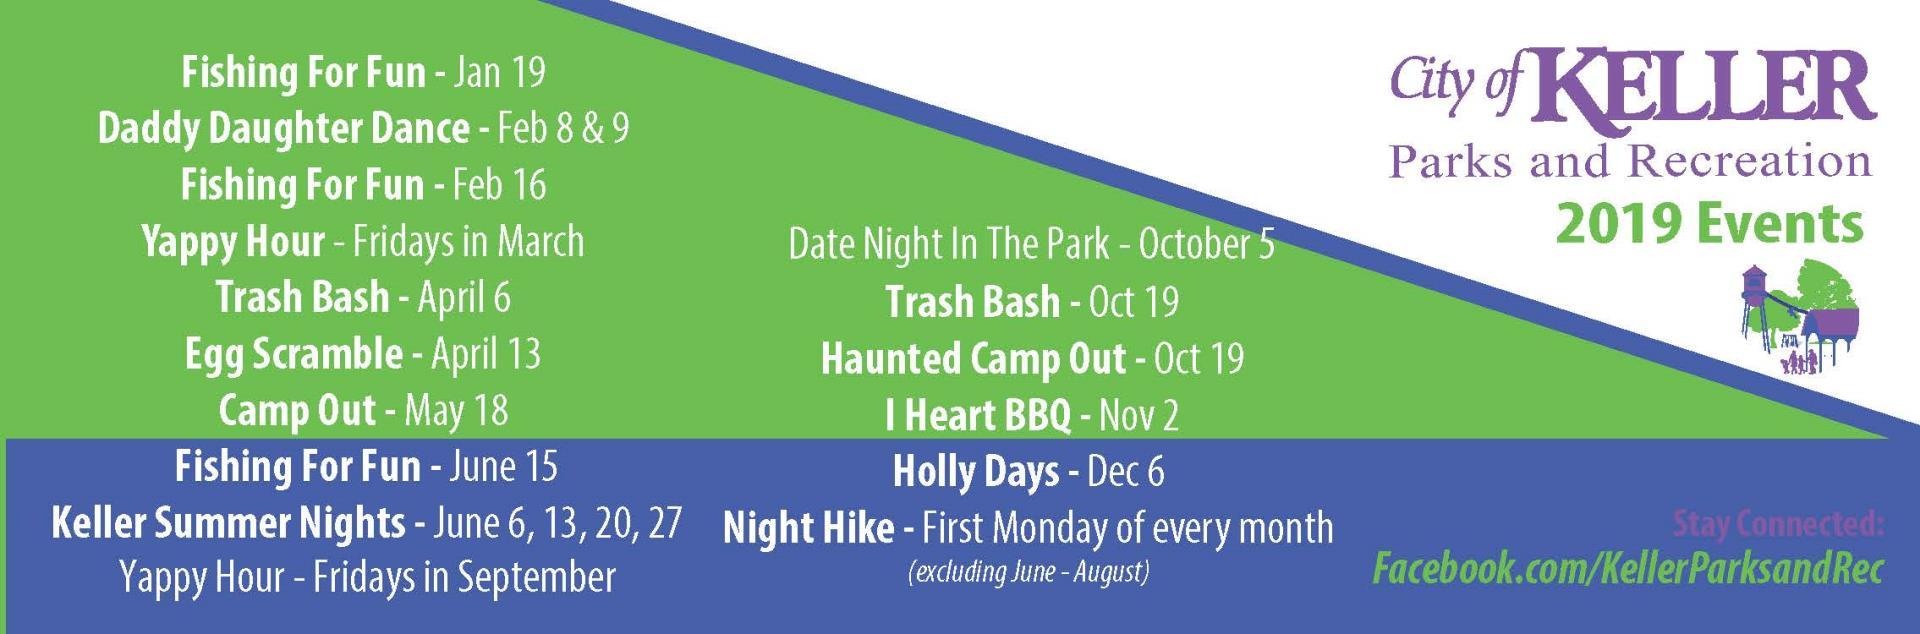 Parks & Recreation Special Events | City of Keller, TX